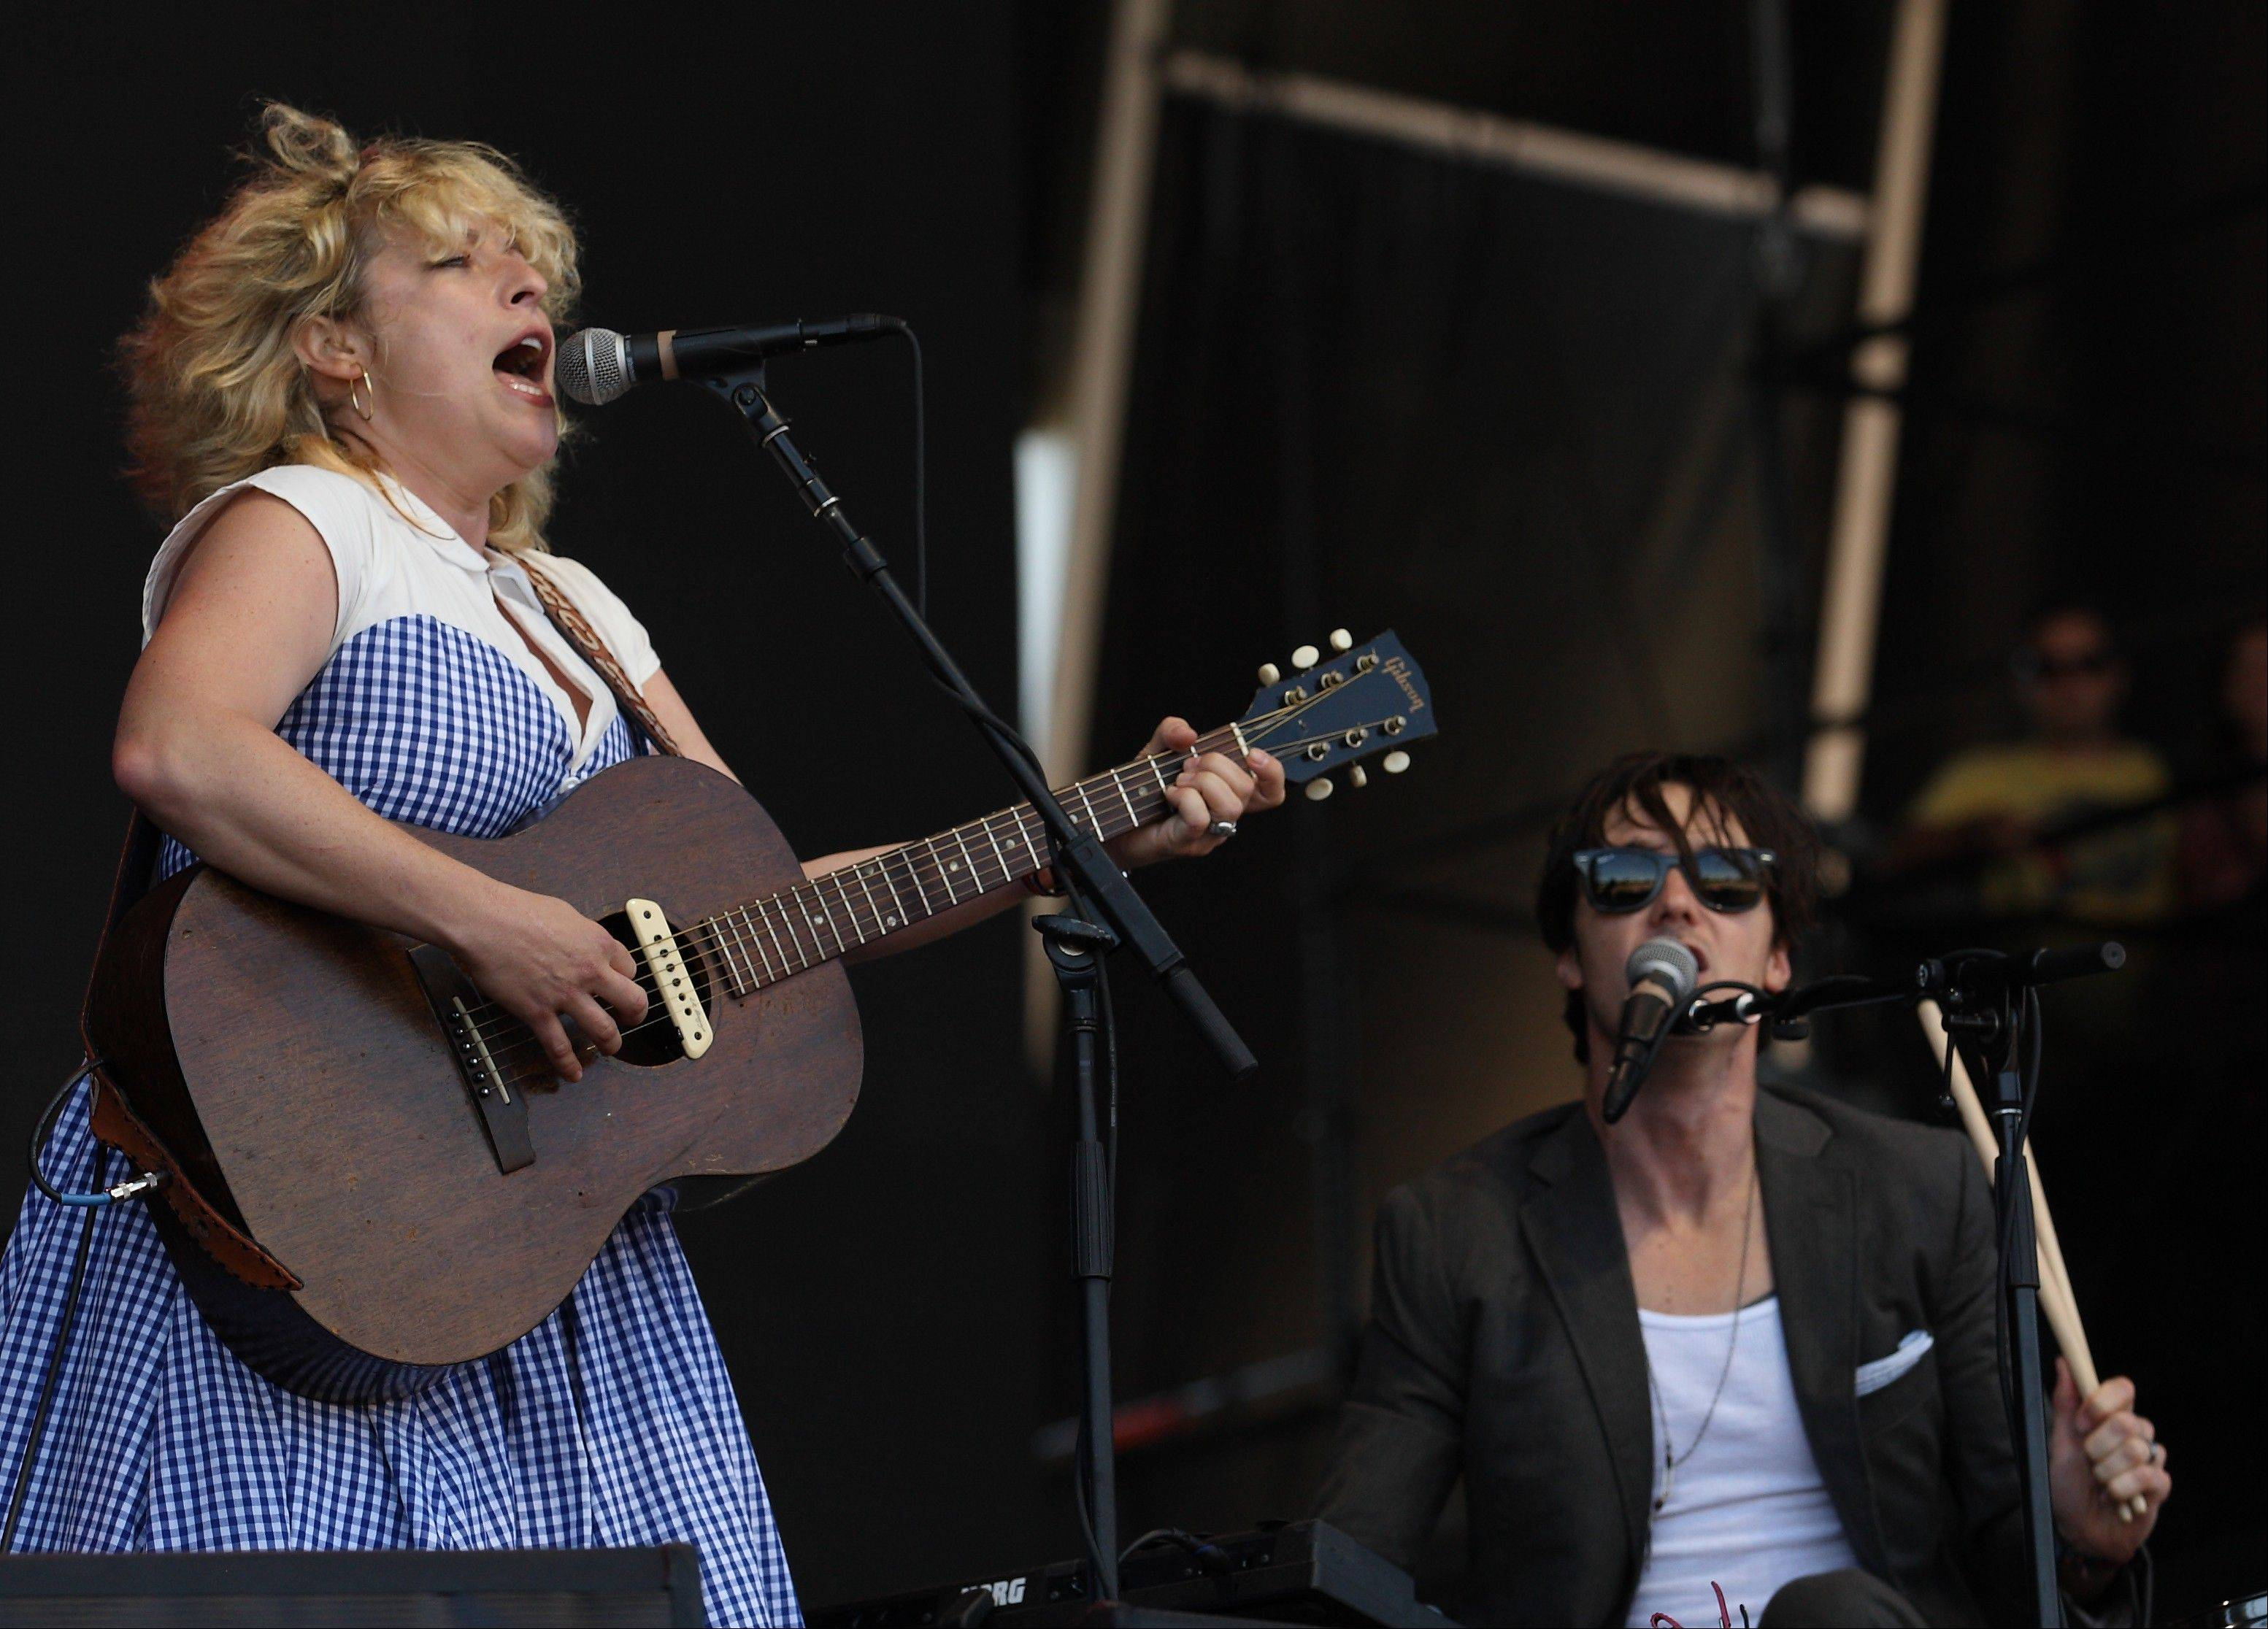 Cary Ann Hearst, left, and Michael Trent, right, of the duo Shovels & Rope on day 2 of Lollapalooza 2013 at Grant Park on Saturday, Aug.3, 2013 in Chicago.